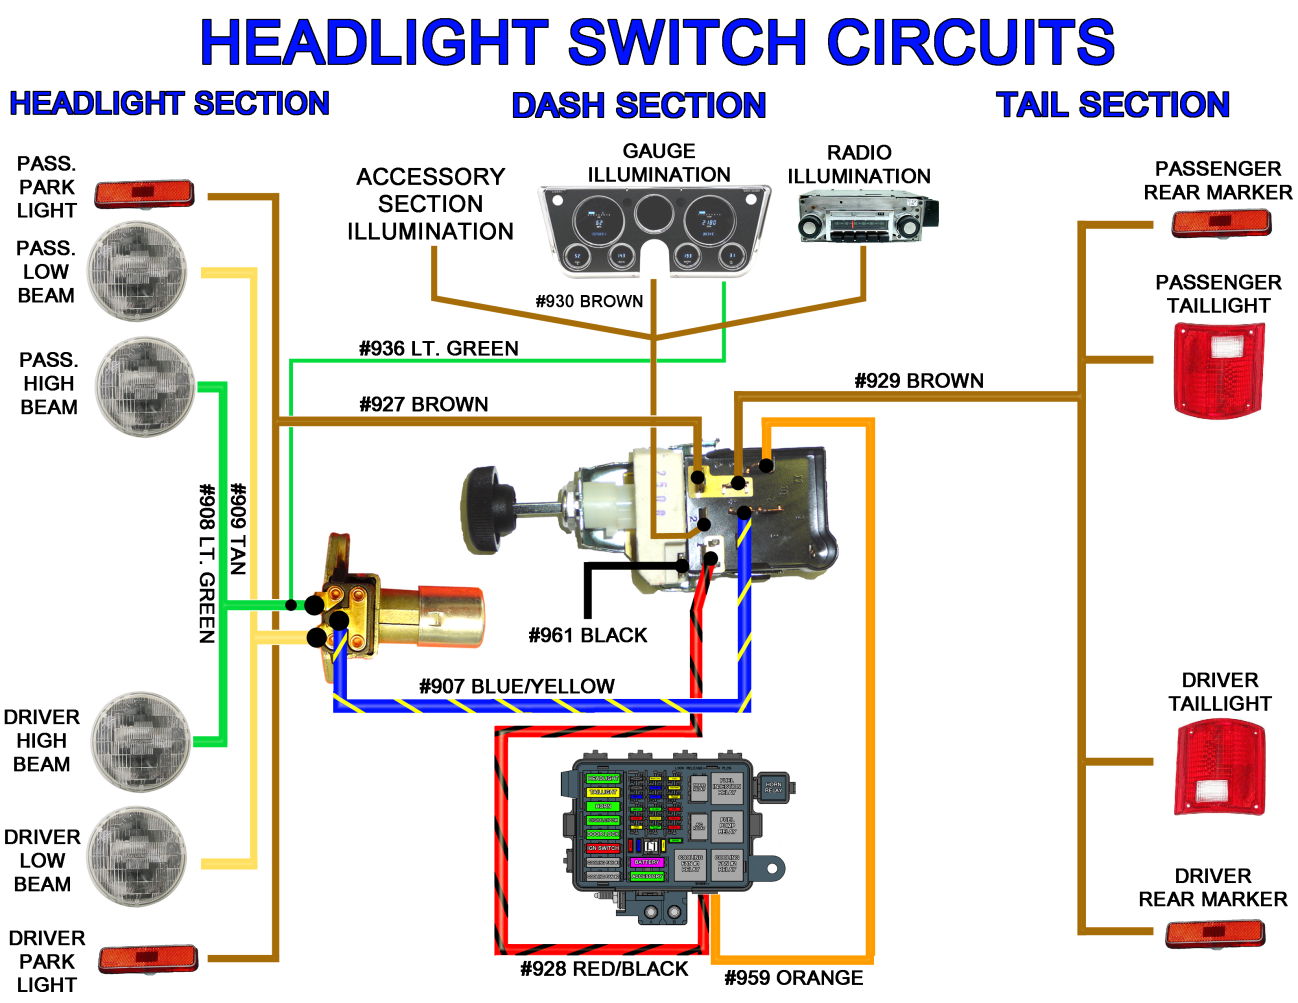 Headlight Wiring Diagram : Headlight connector wiring diagram